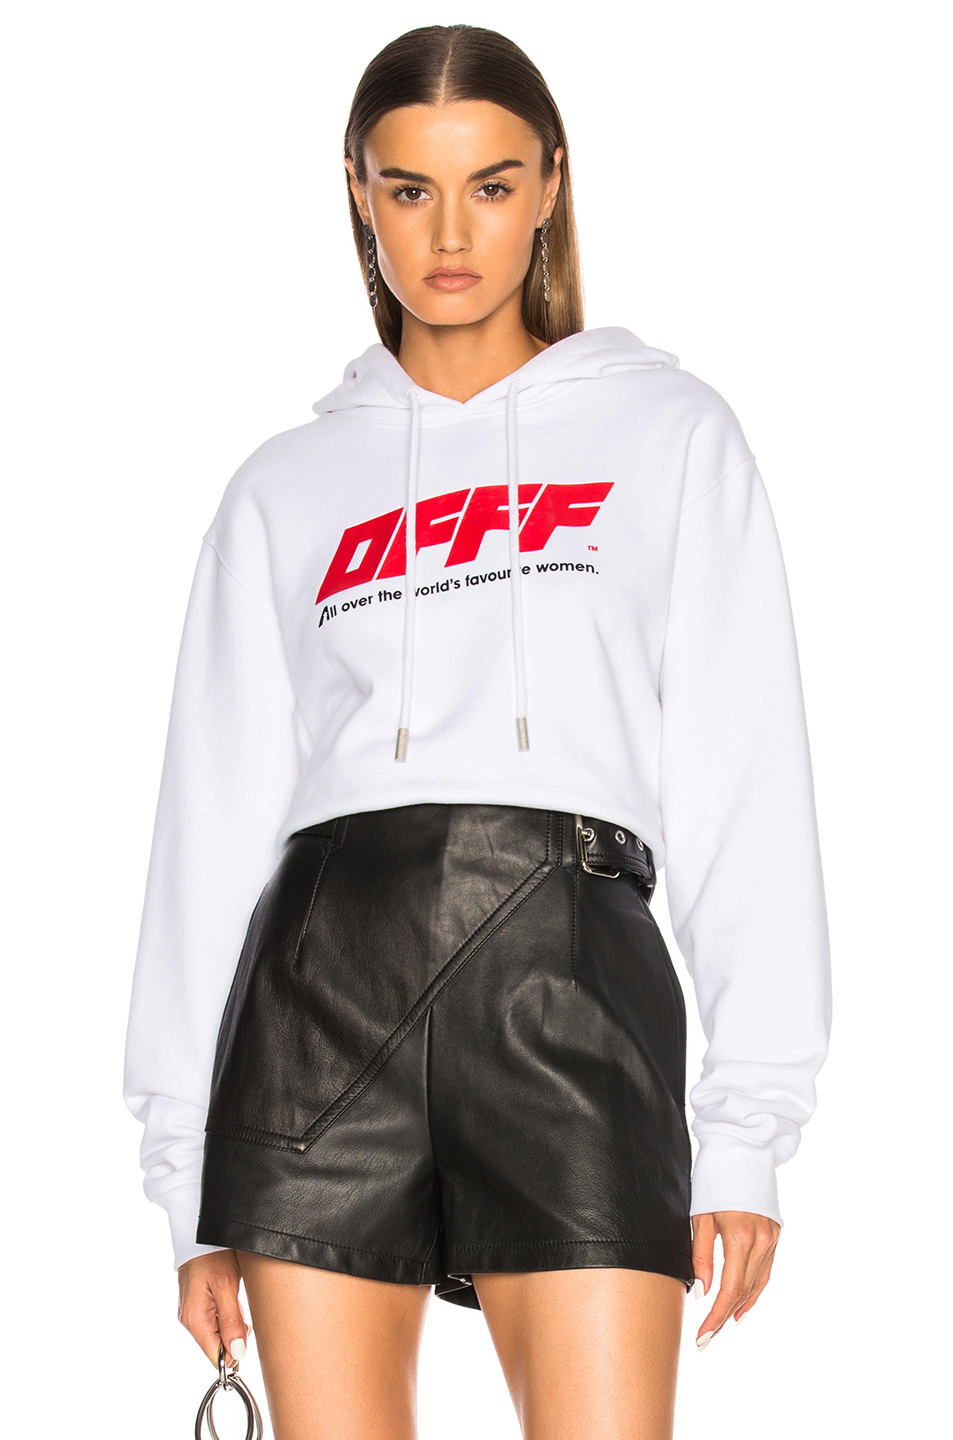 1f164ea912a8 Buy Original OFF-WHITE Cropped Hoodie at Indonesia